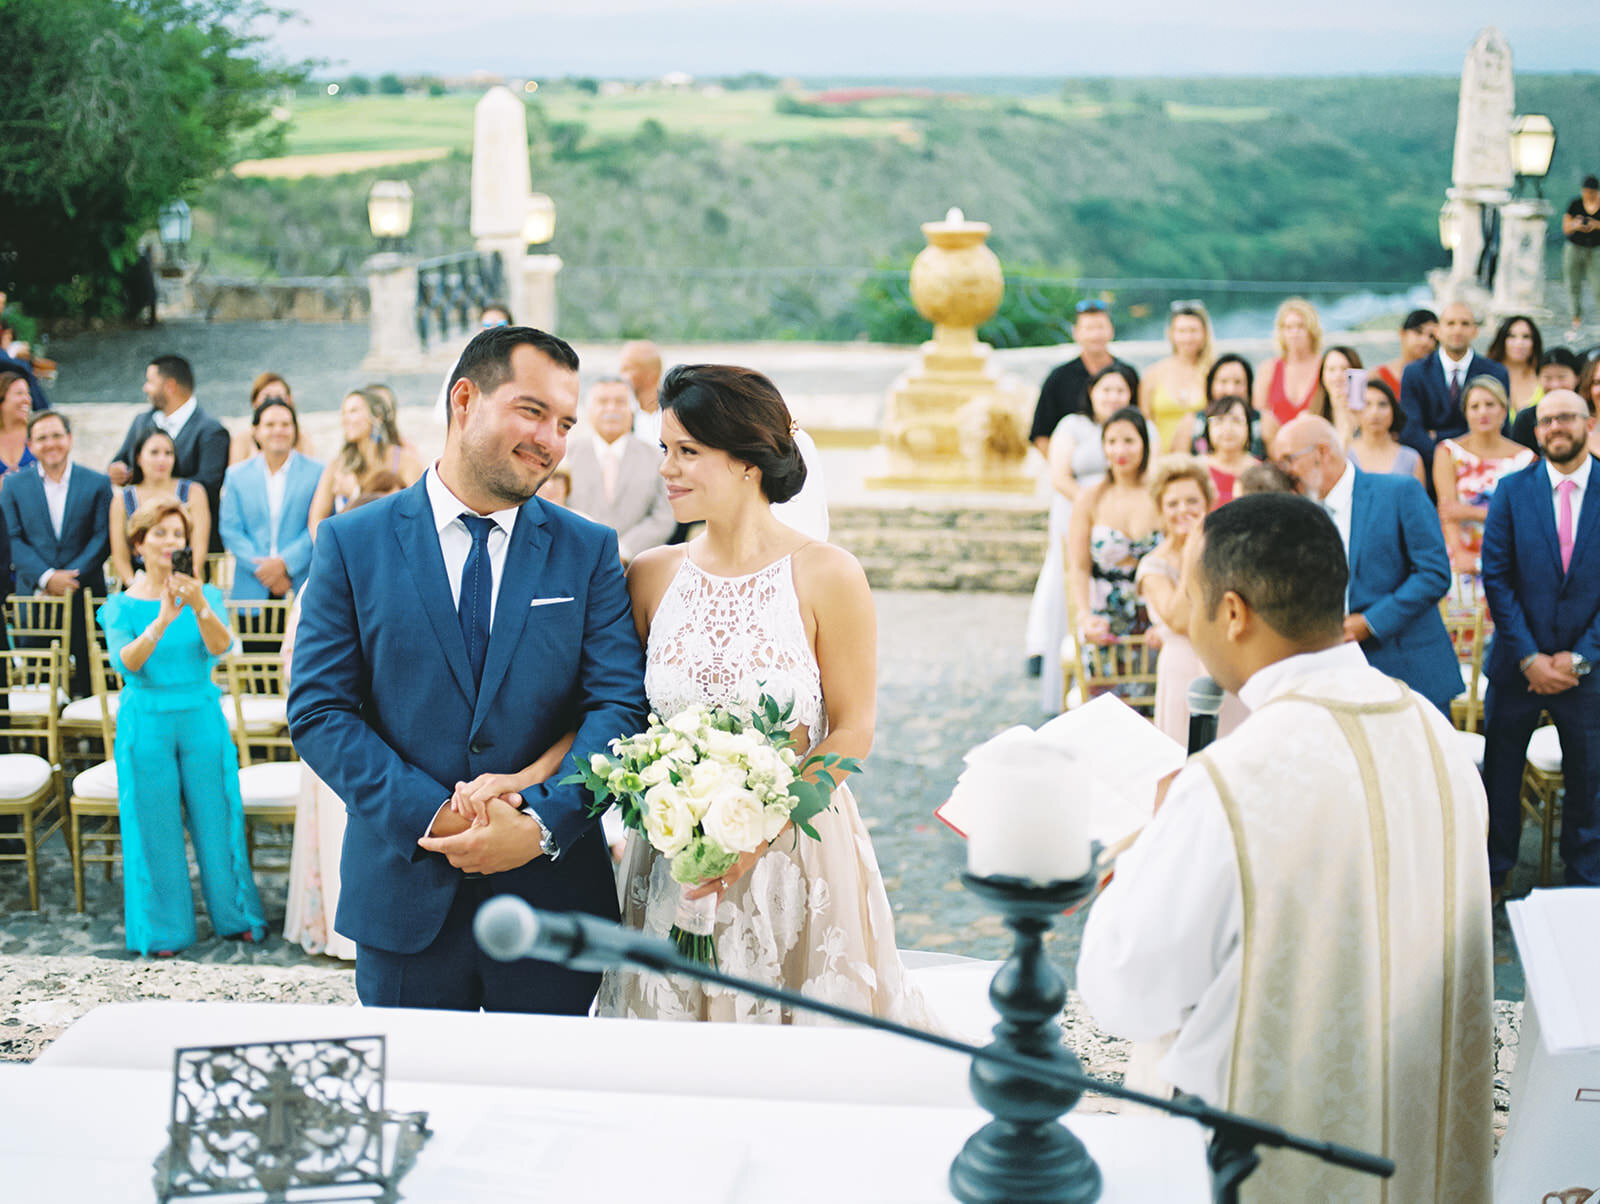 Wedding ceremony at Casa de Campo Resort & Villas